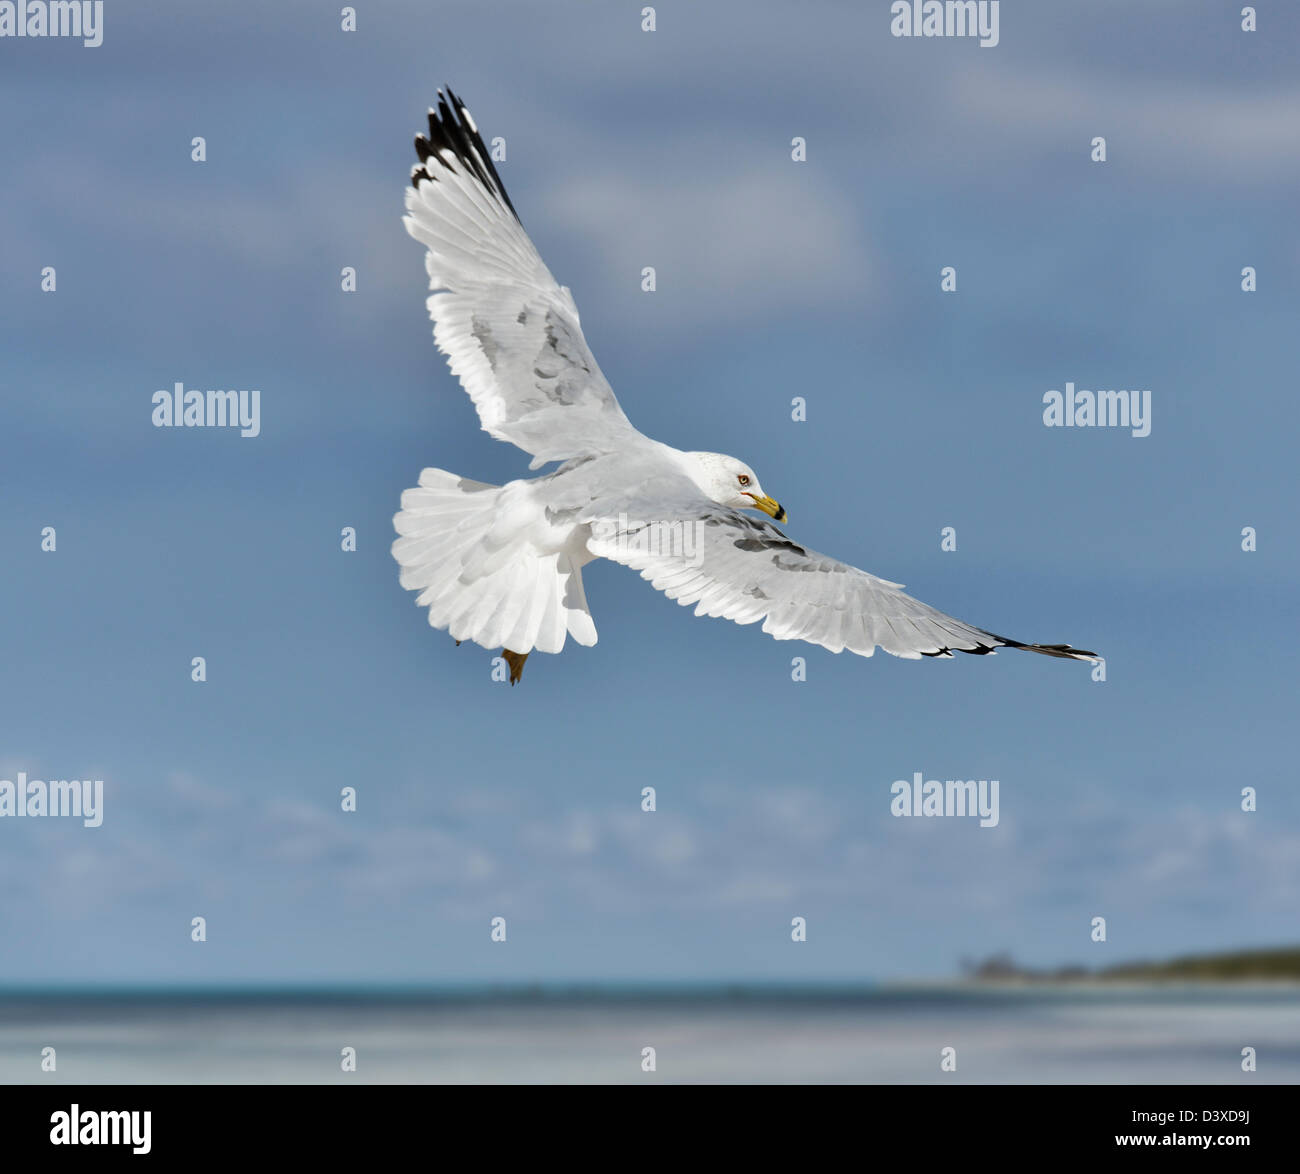 A Seagull, Soaring In The Blue Sky - Stock Image